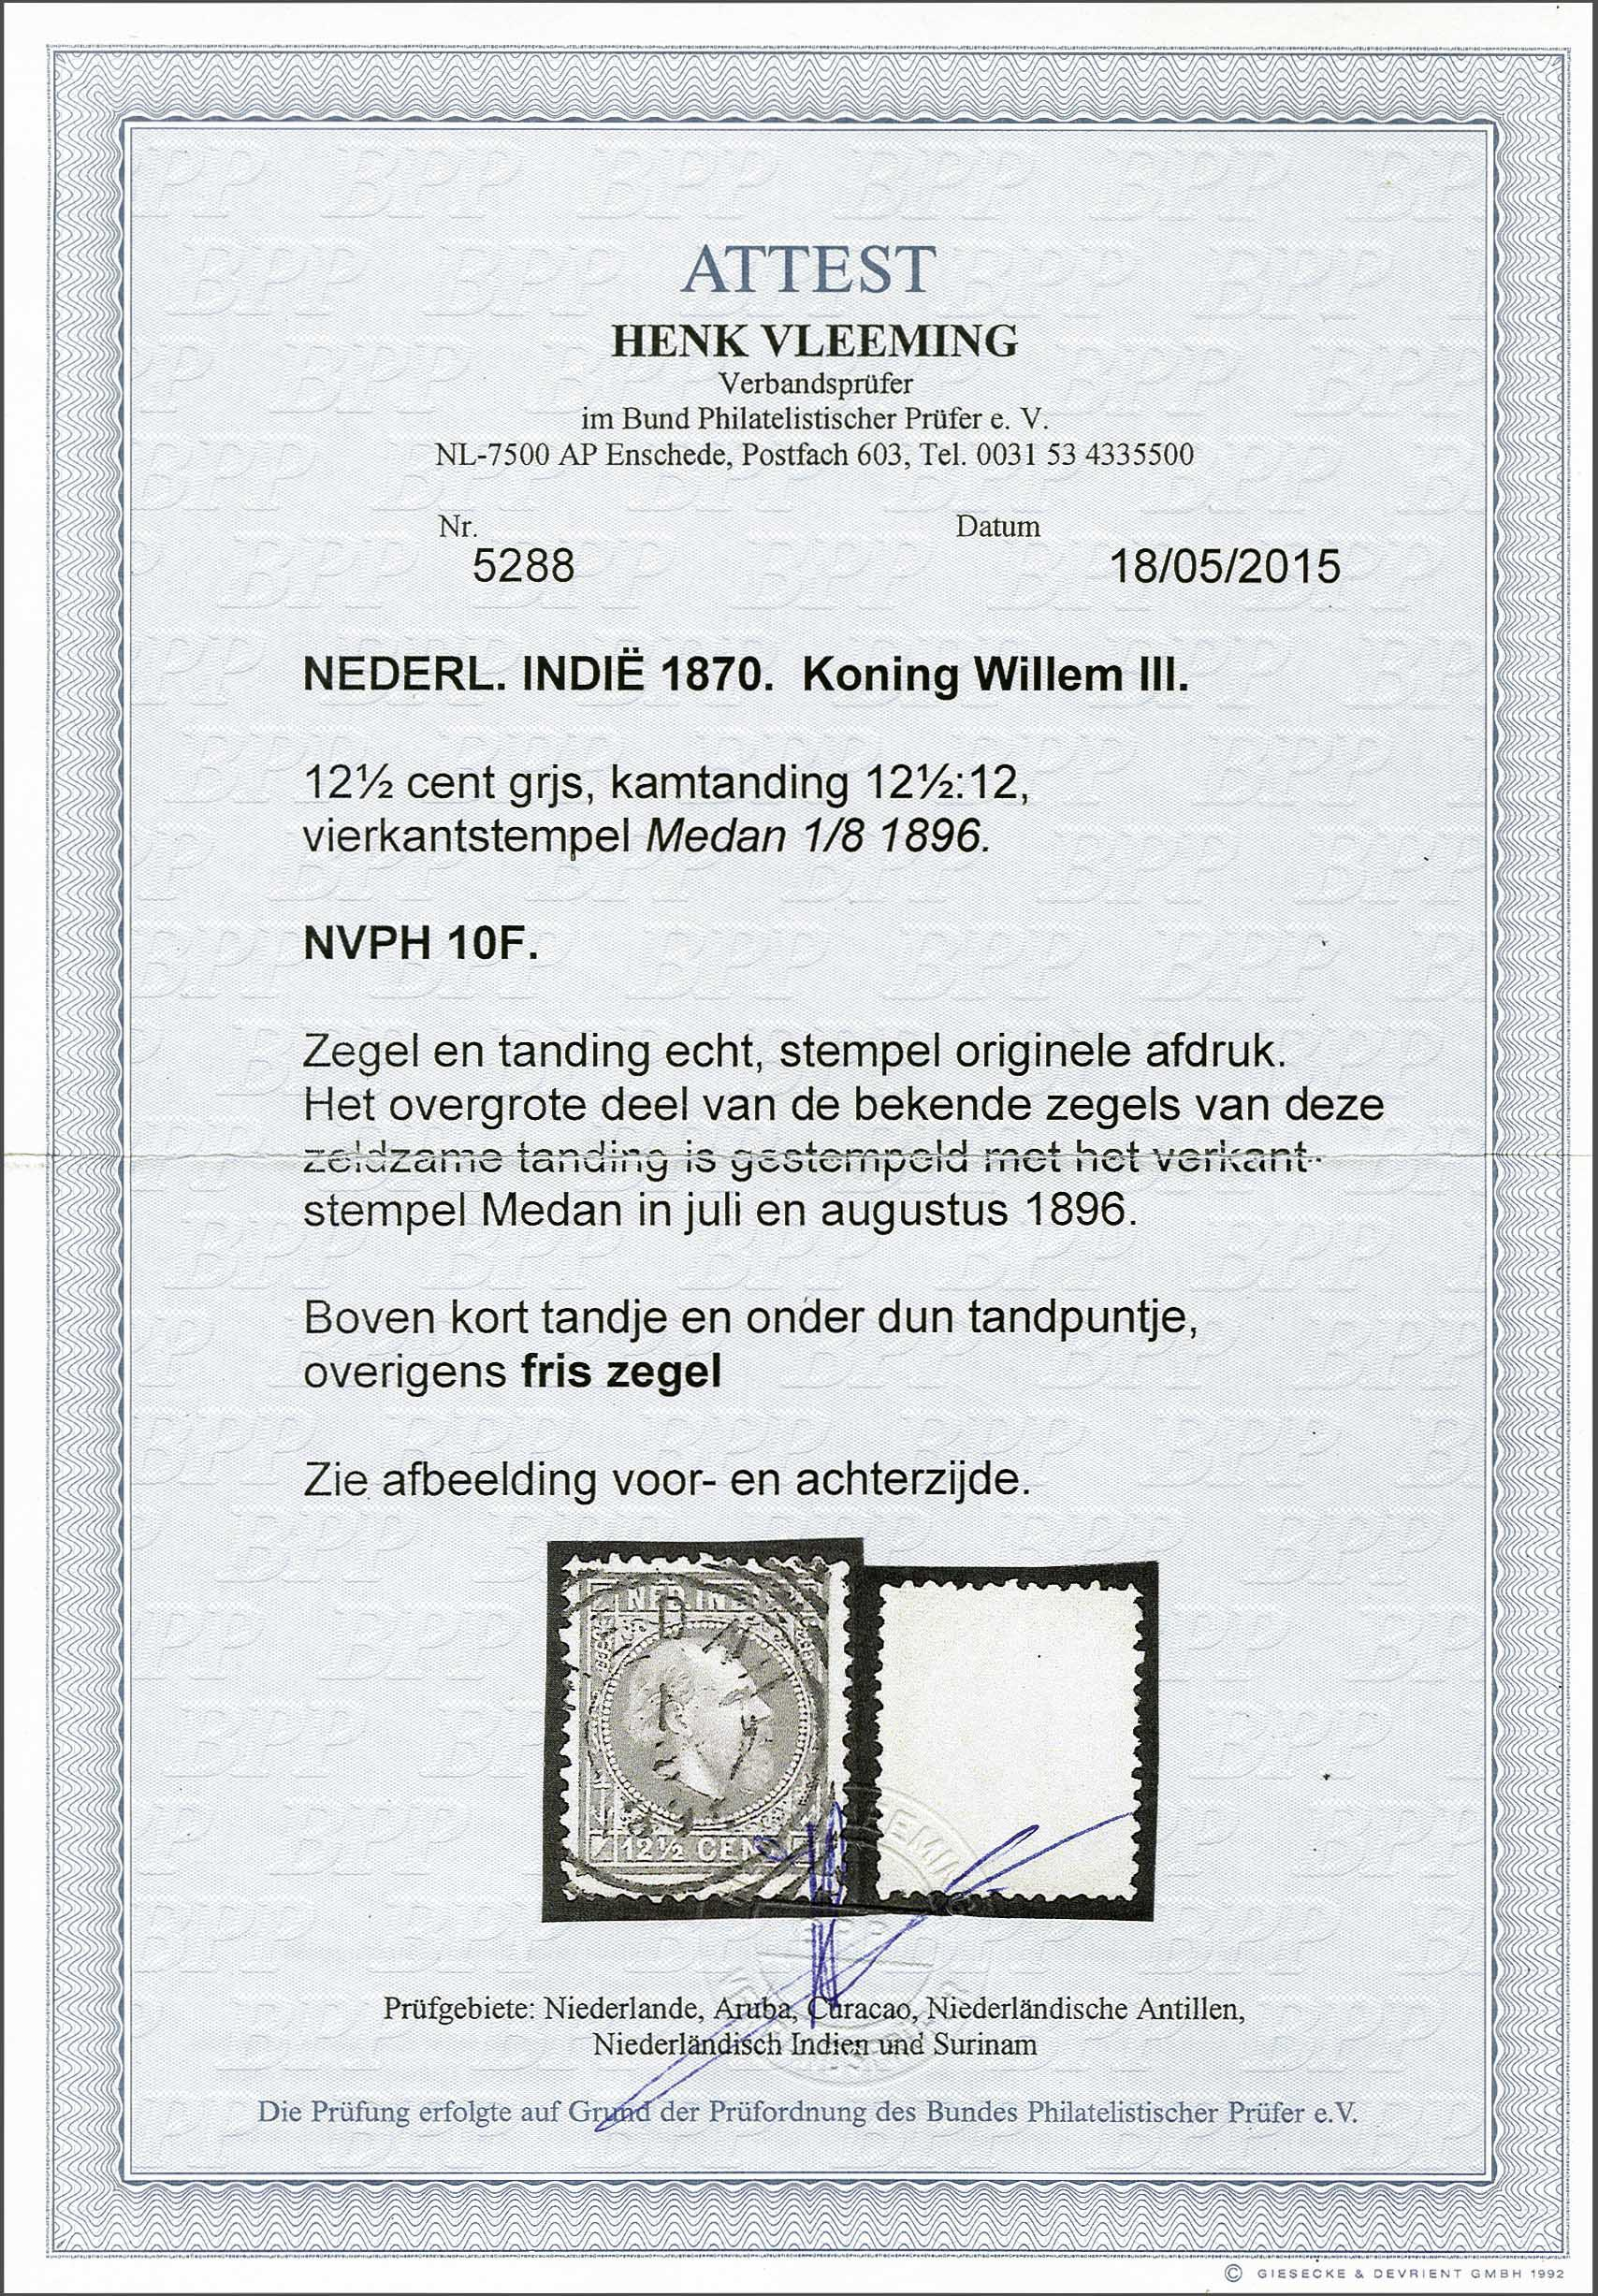 Lot 2047 - Netherlands and former colonies Netherlands Indies -  Corinphila Veilingen Auction 245-246 Day 3 - Netherlands and former colonies - Single lots, Collections and lots, Boxes and literature